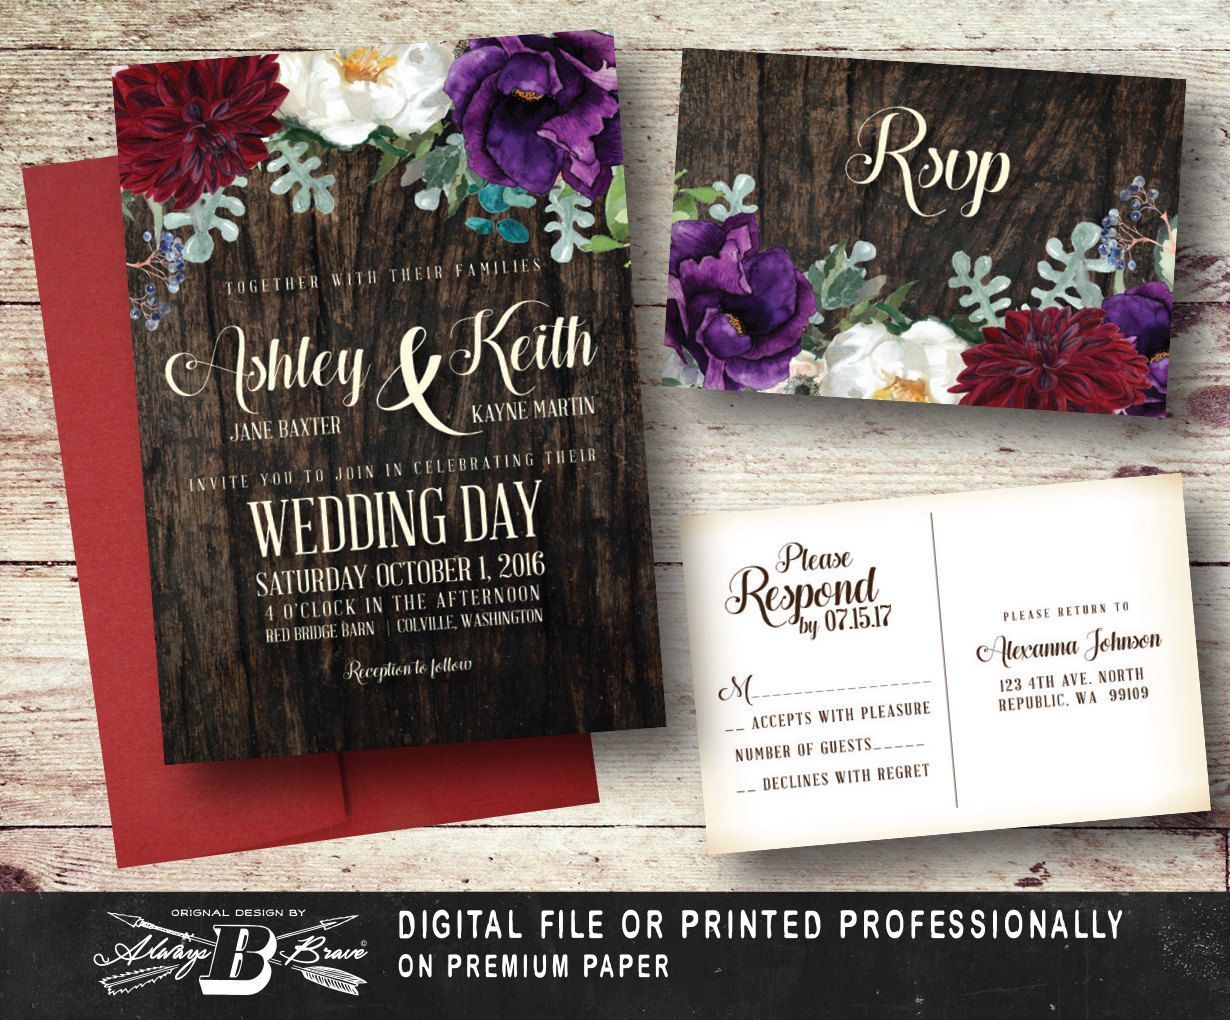 diy wedding invites rustic%0A Rustic Wedding Invitation SET   Roses Wood Printed Invite   Printable  Digital File DIY   Country Boho Marsala Burgundy Plum Purple Flowers